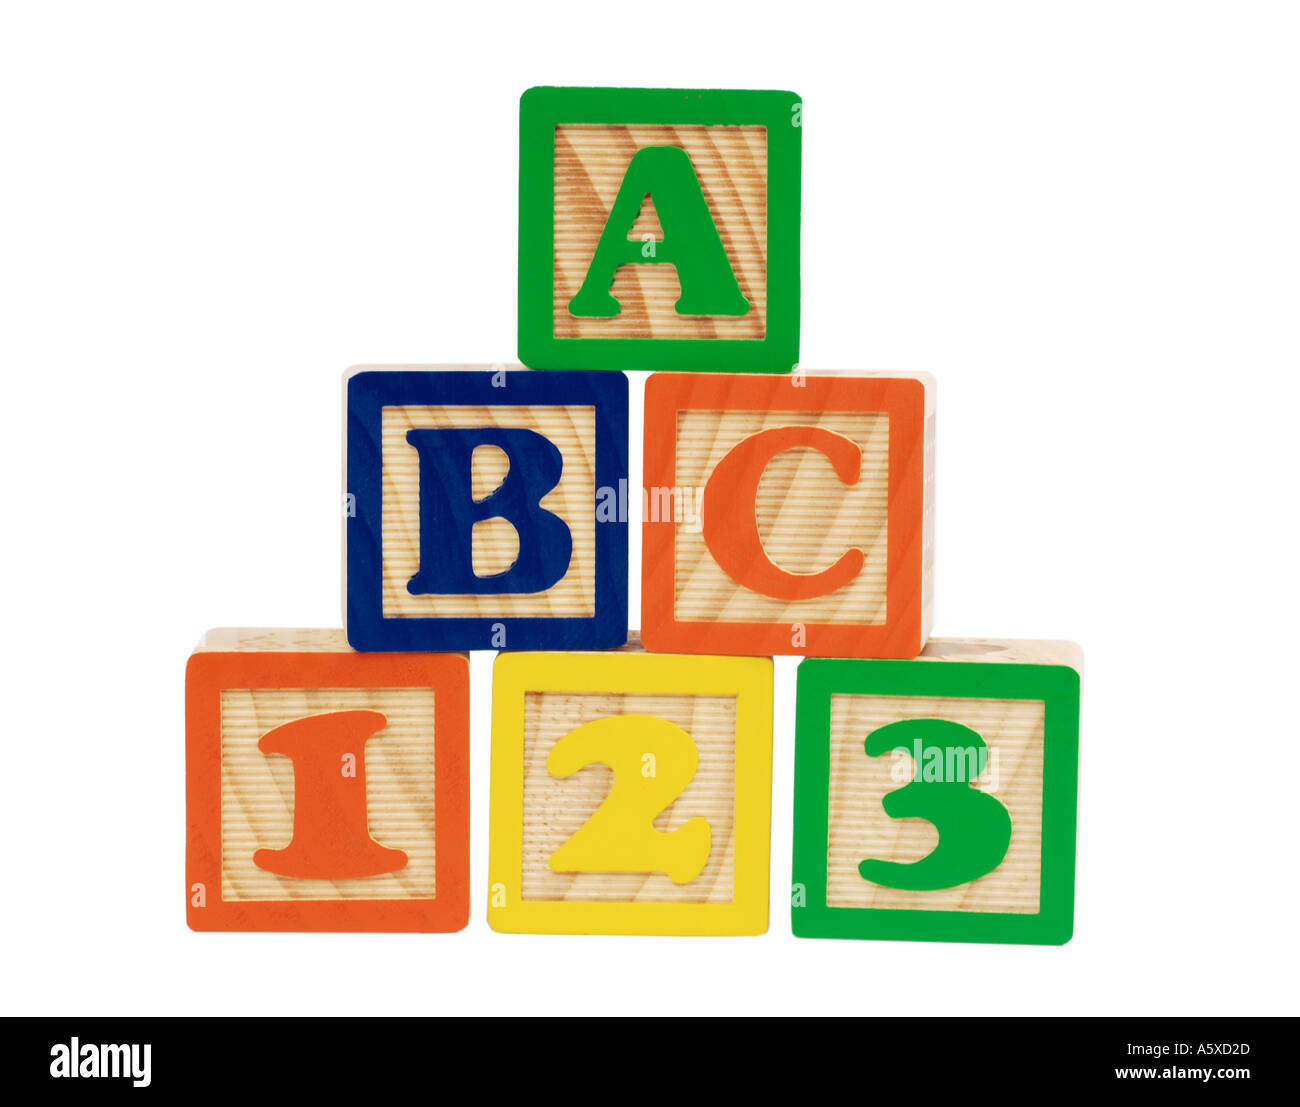 letter b building block alphabet stock photos letter b building